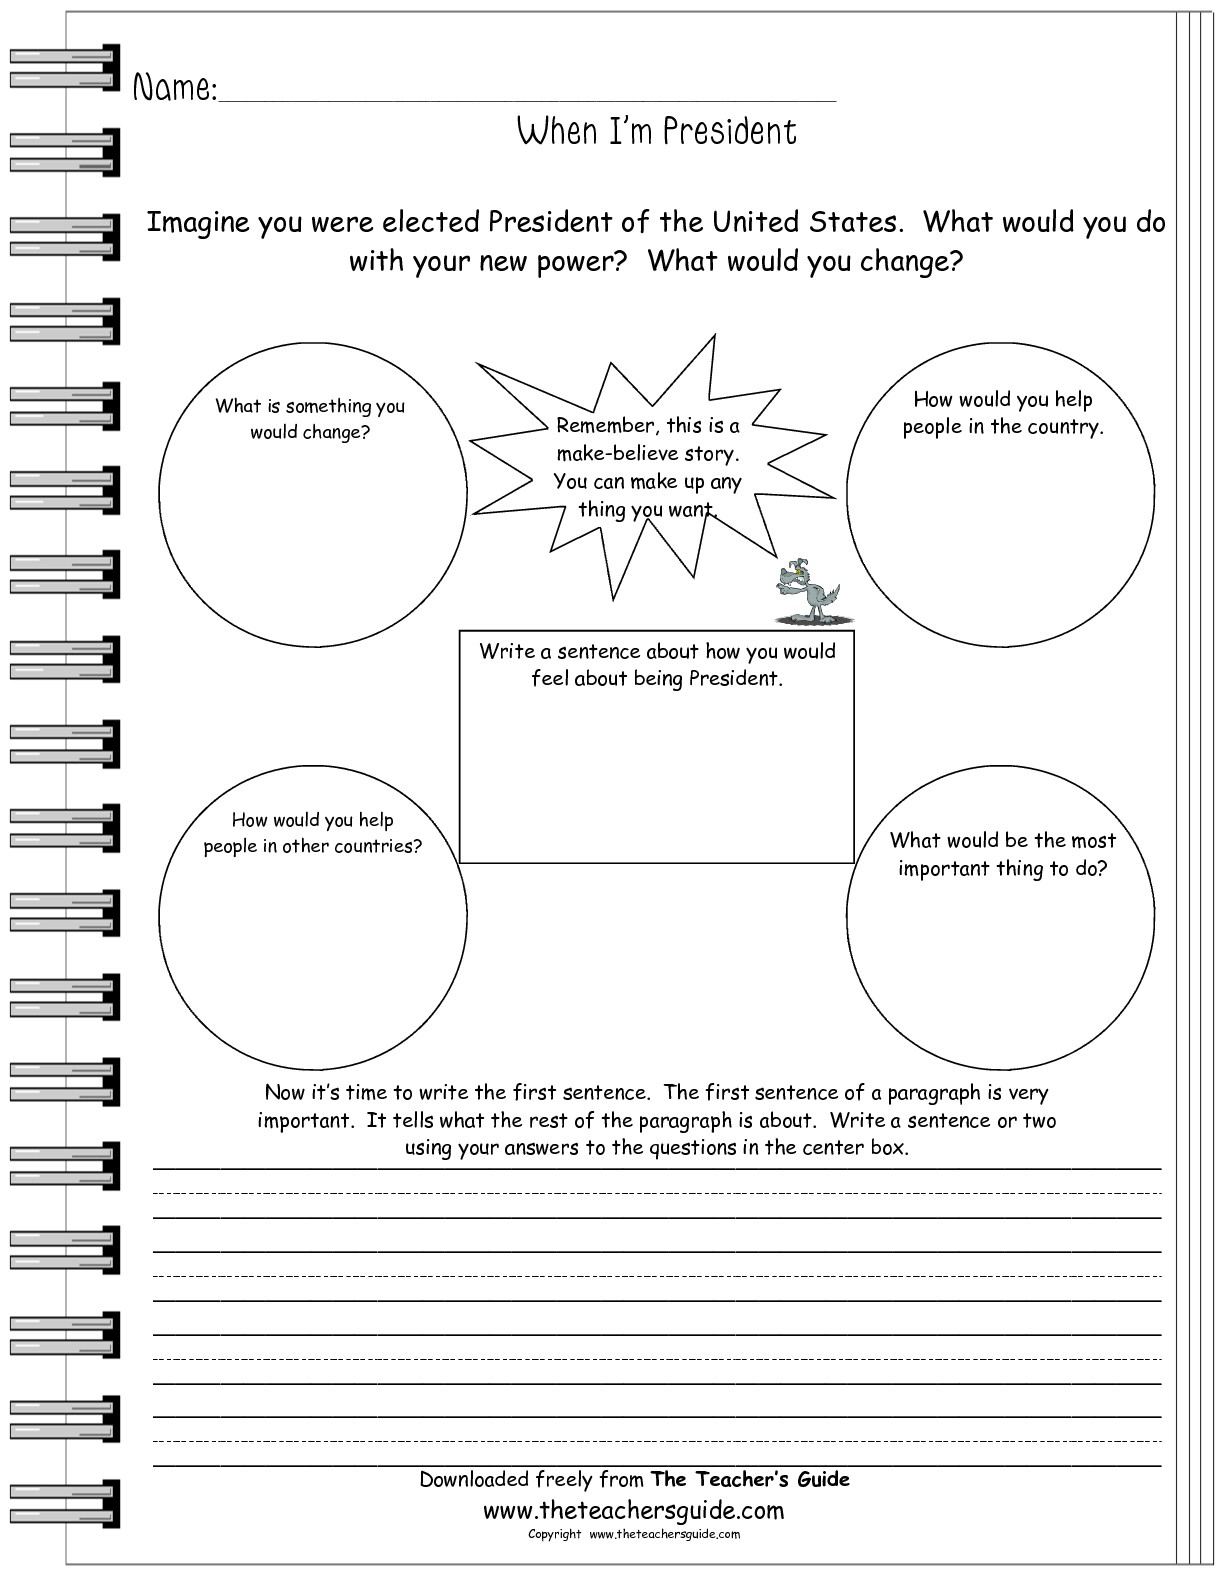 If I Were President Printable Worksheet